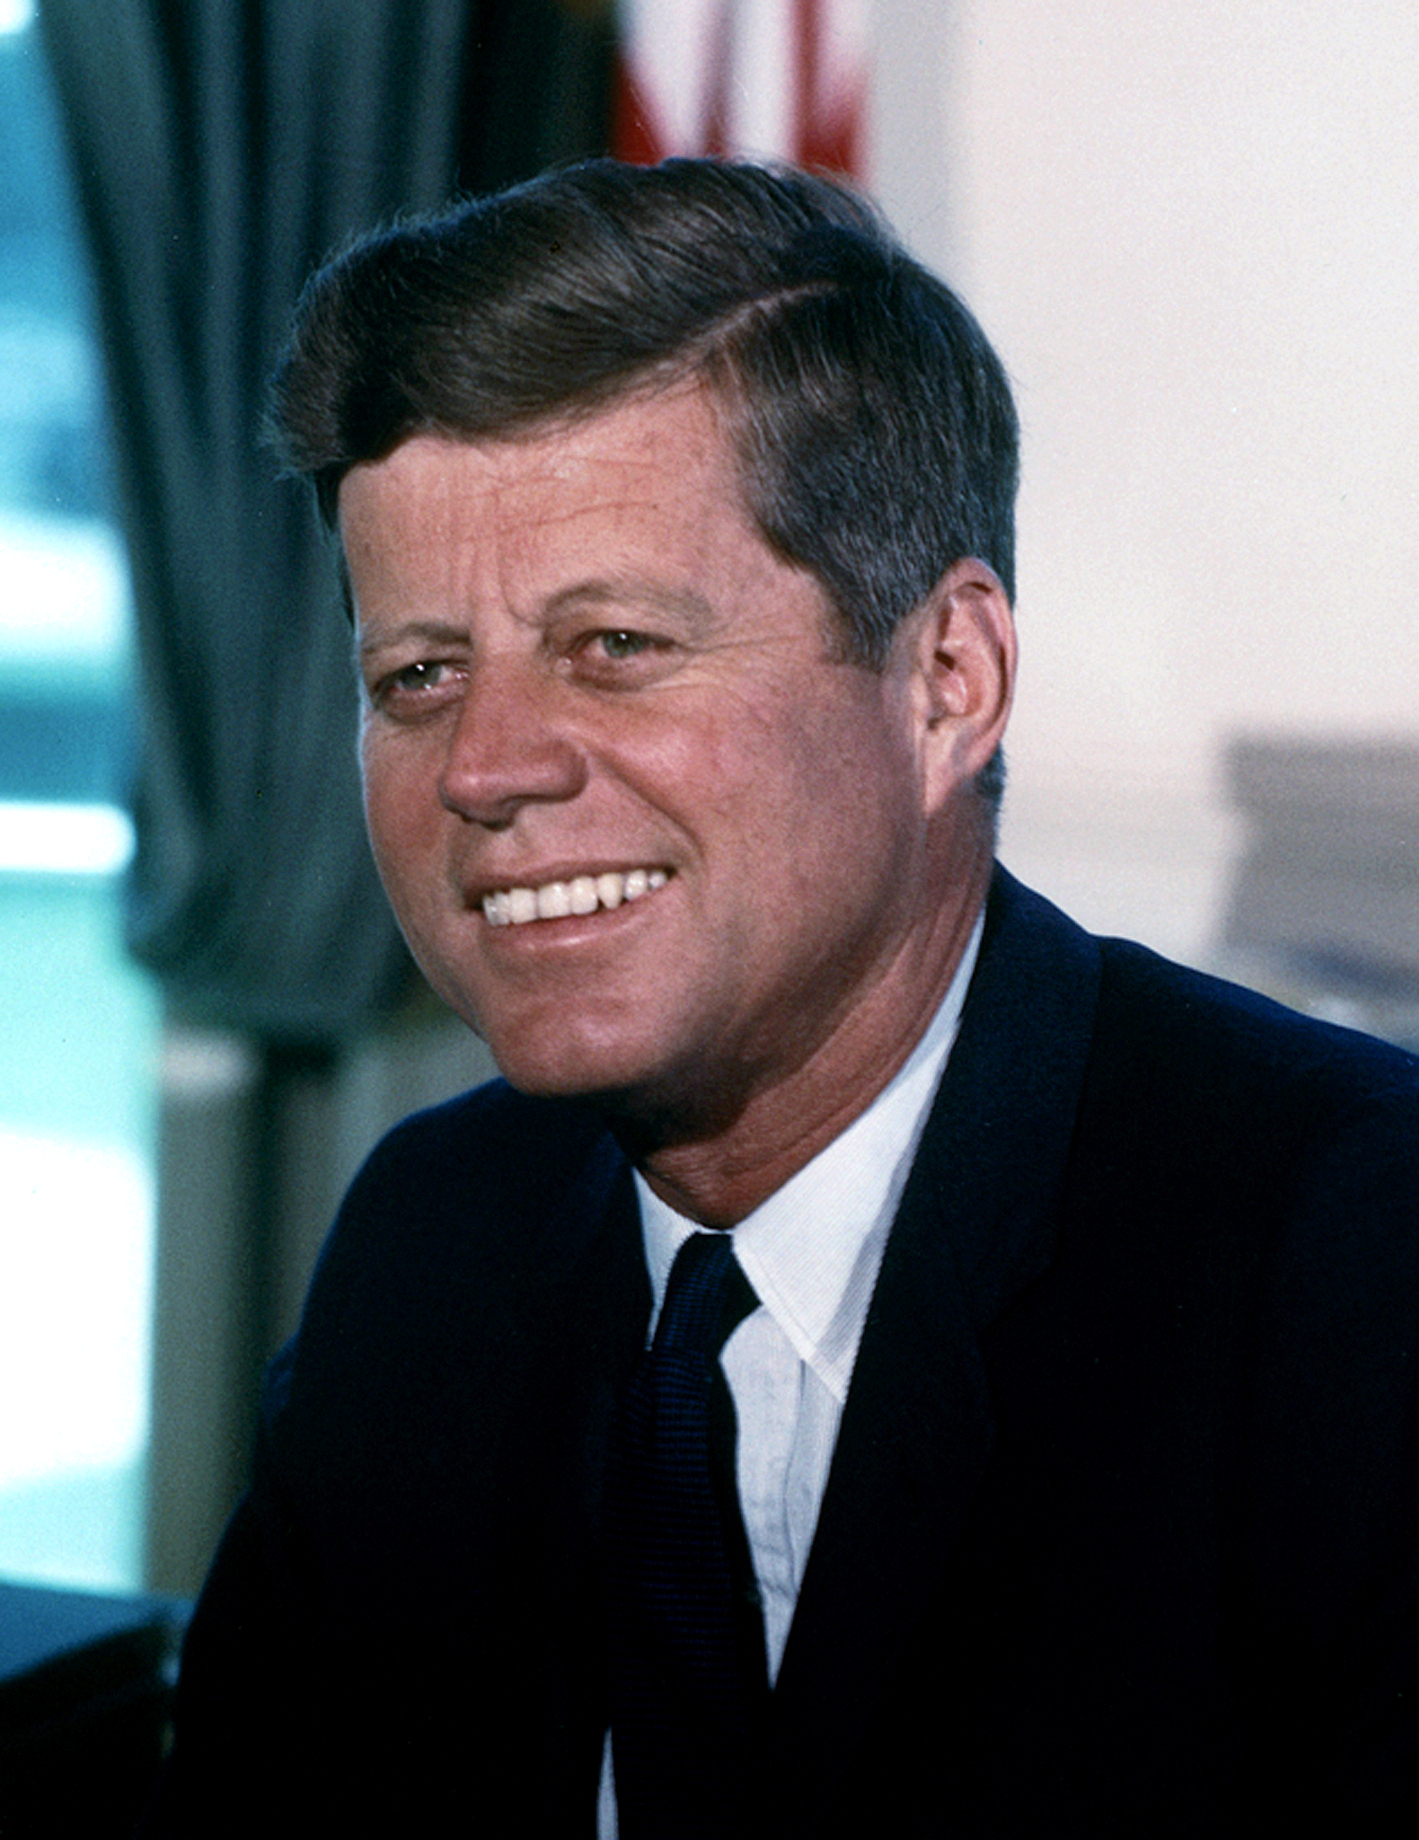 Image result for president jfk